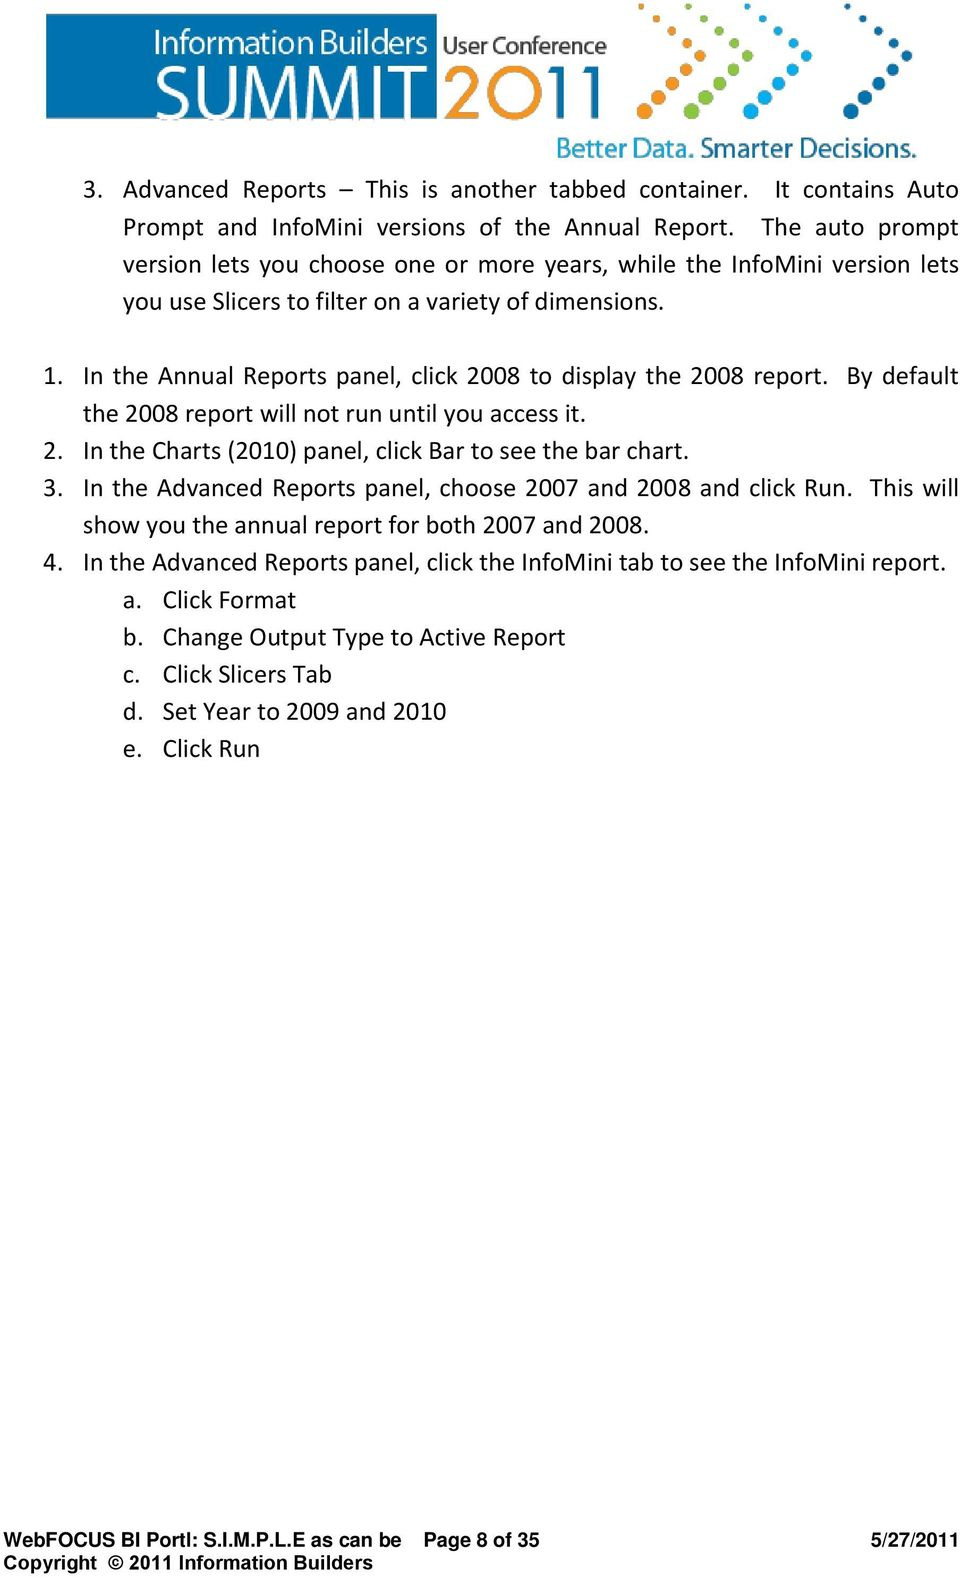 In the Annual Reports panel, click 2008 to display the 2008 report. By default the 2008 report will not run until you access it. 2. In the Charts (2010) panel, click Bar to see the bar chart. 3.